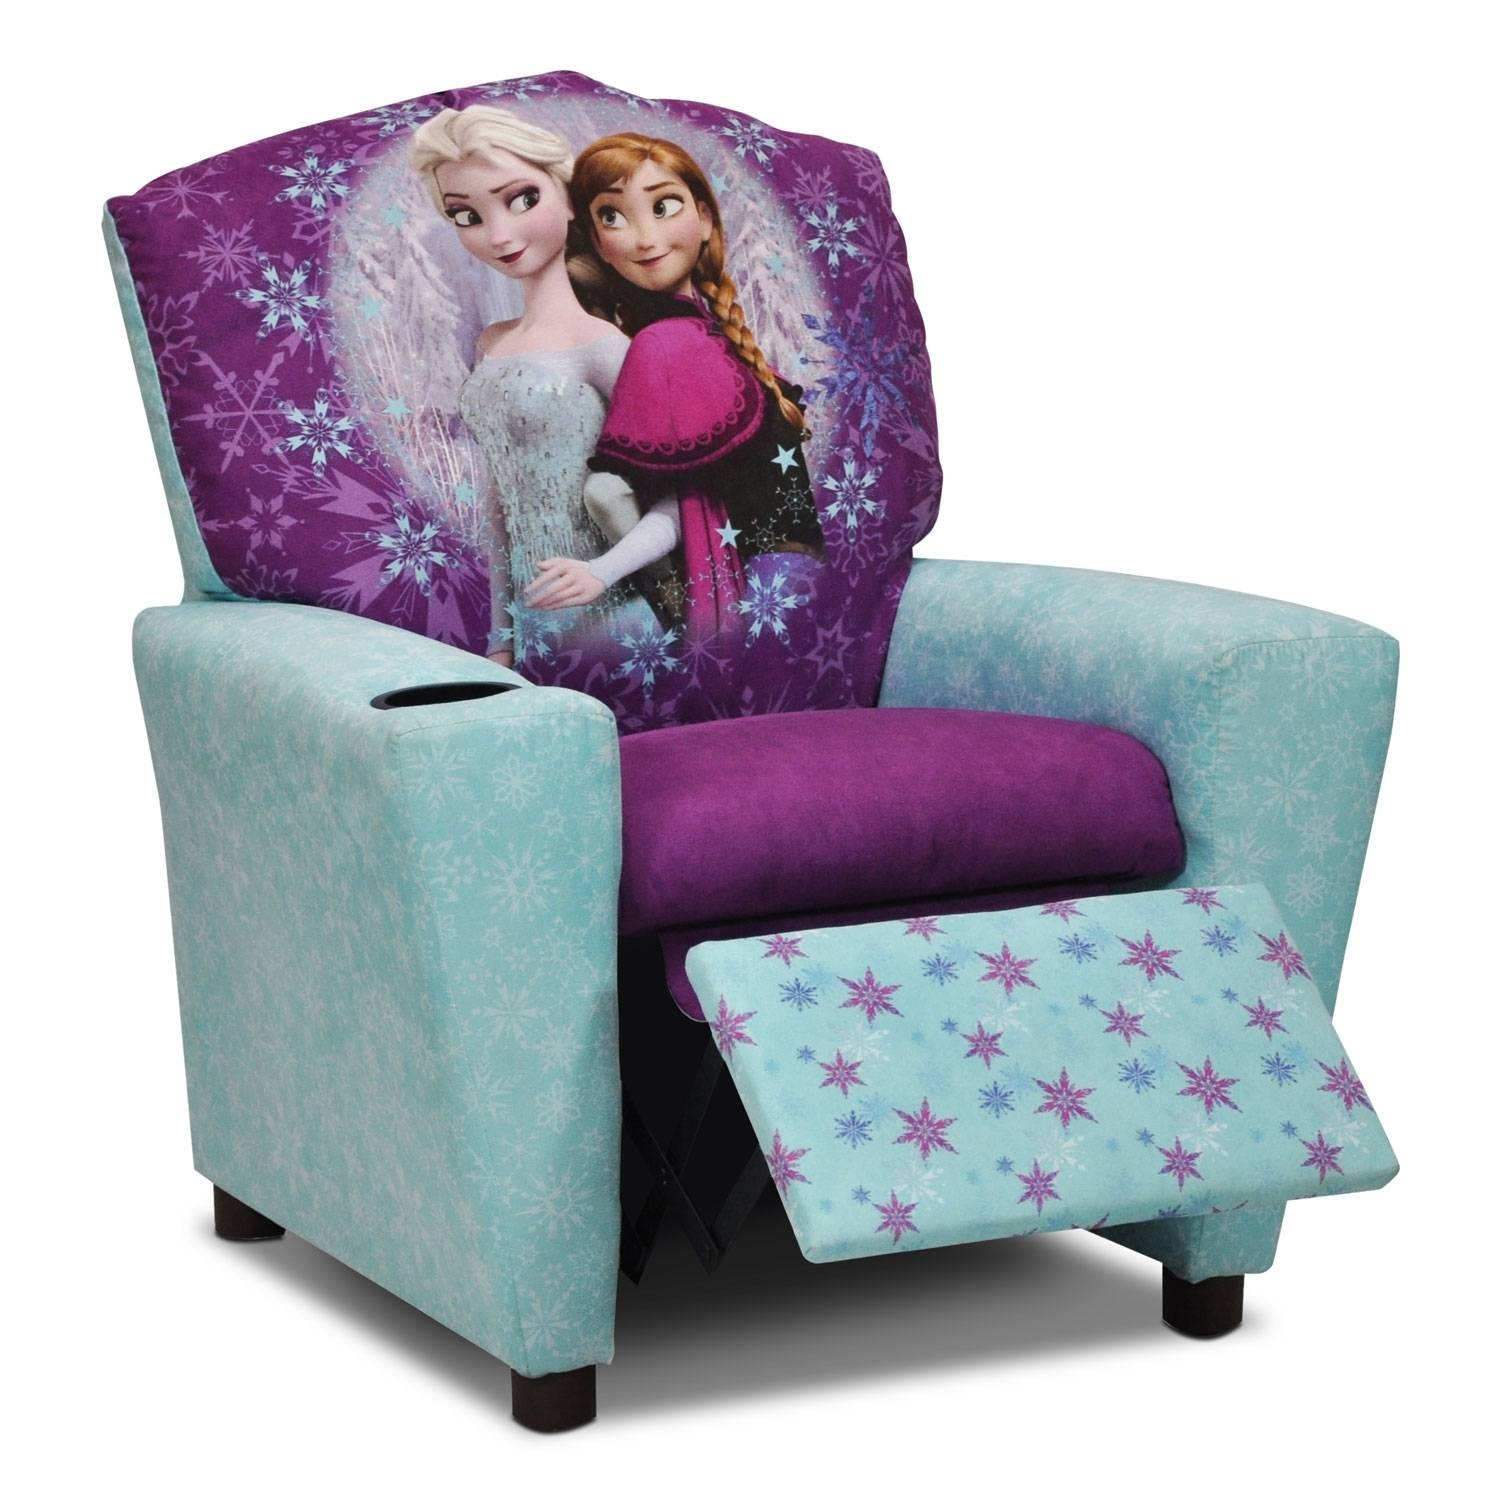 Sofas Center : Sofa Chair For Toddlers Toddler Astounding Picture for Toddler Sofa Chairs (Image 13 of 15)